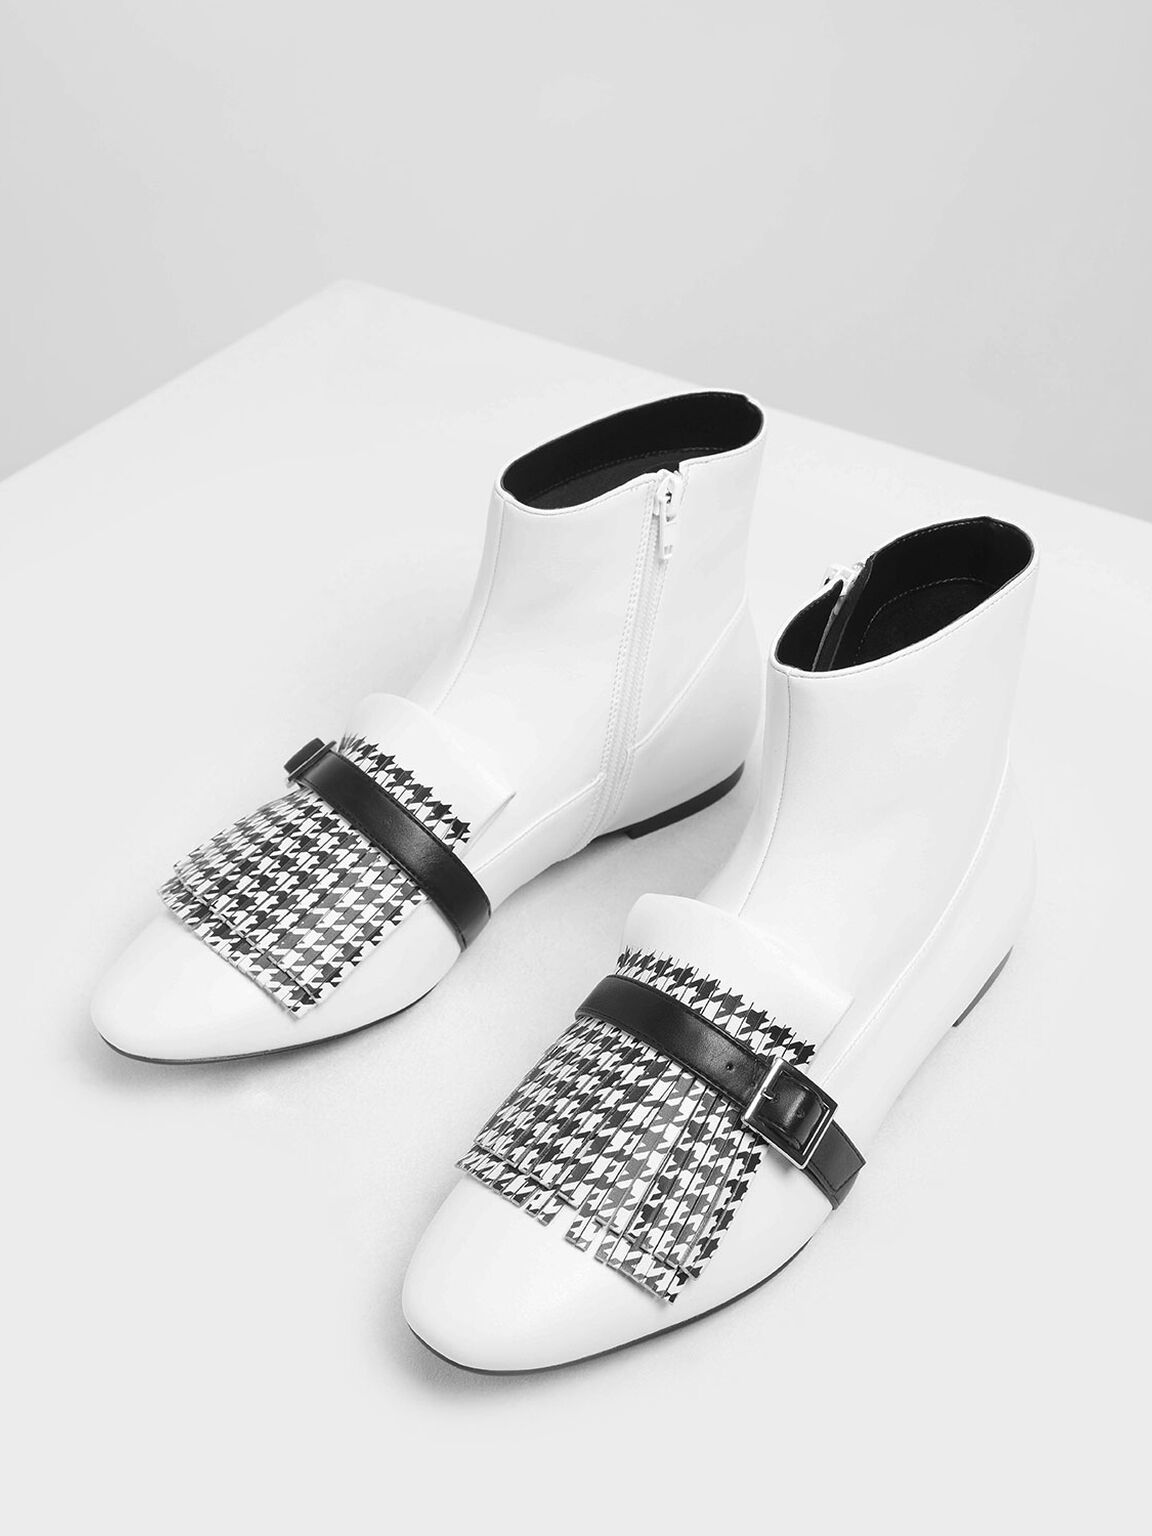 Houndstooth Printed Fringe Flat Ankle Boots, White, hi-res